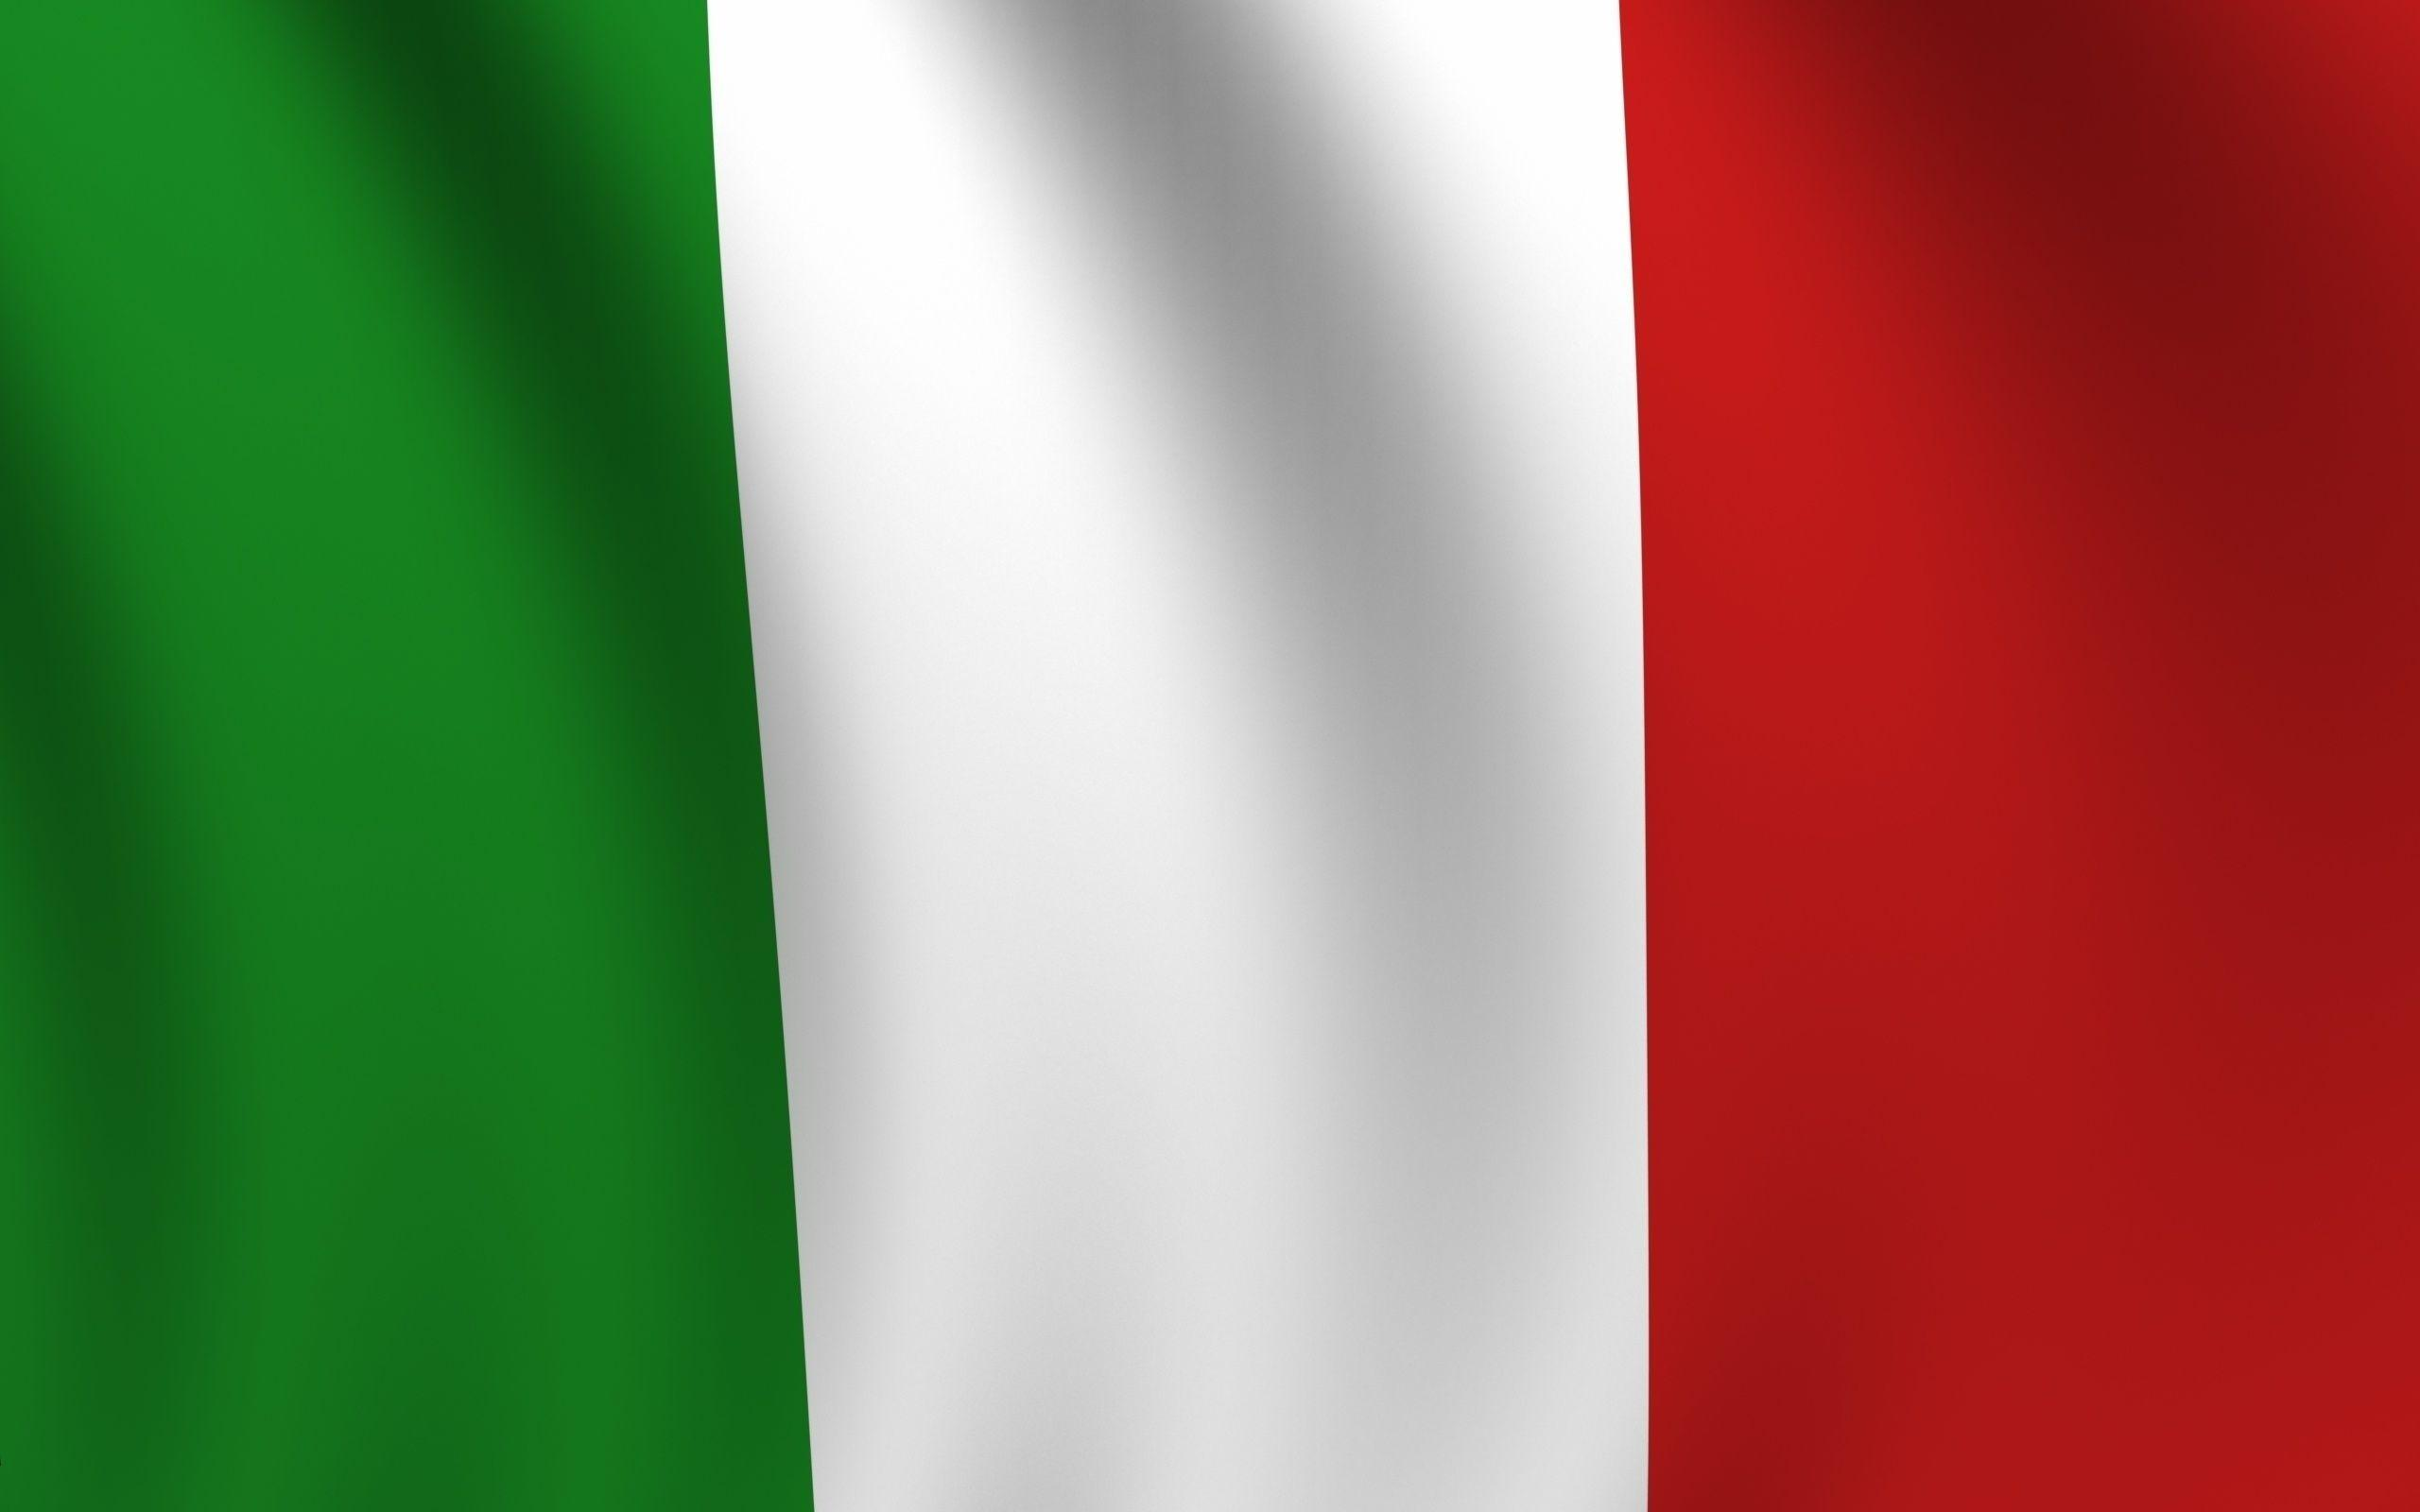 100% HDQ Italian Flag Wallpapers